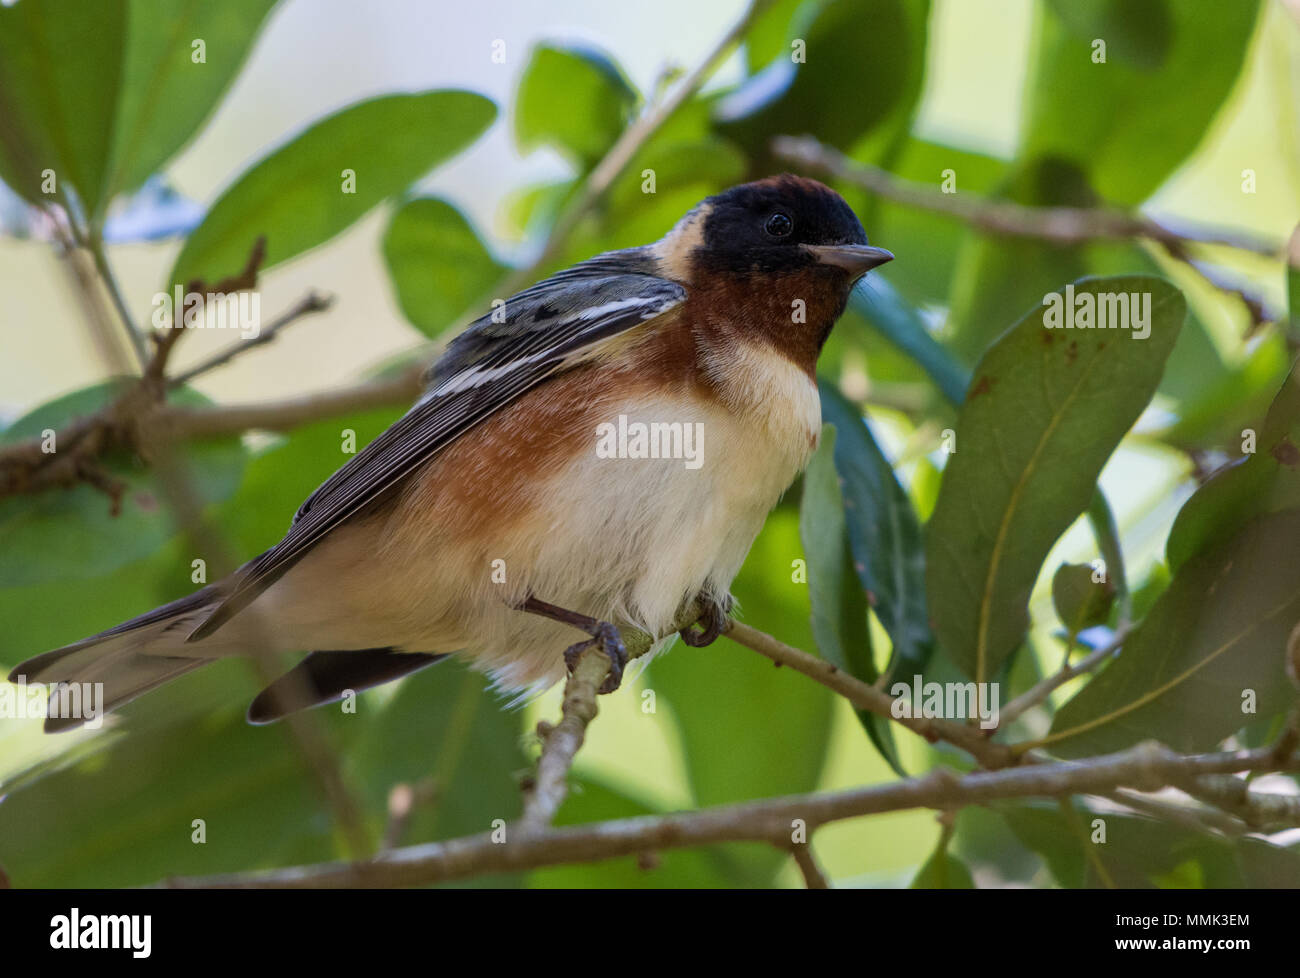 A Bay-breasted Warbler (Setophaga castanea) perched on a branch. High Island, Texas, USA. - Stock Image